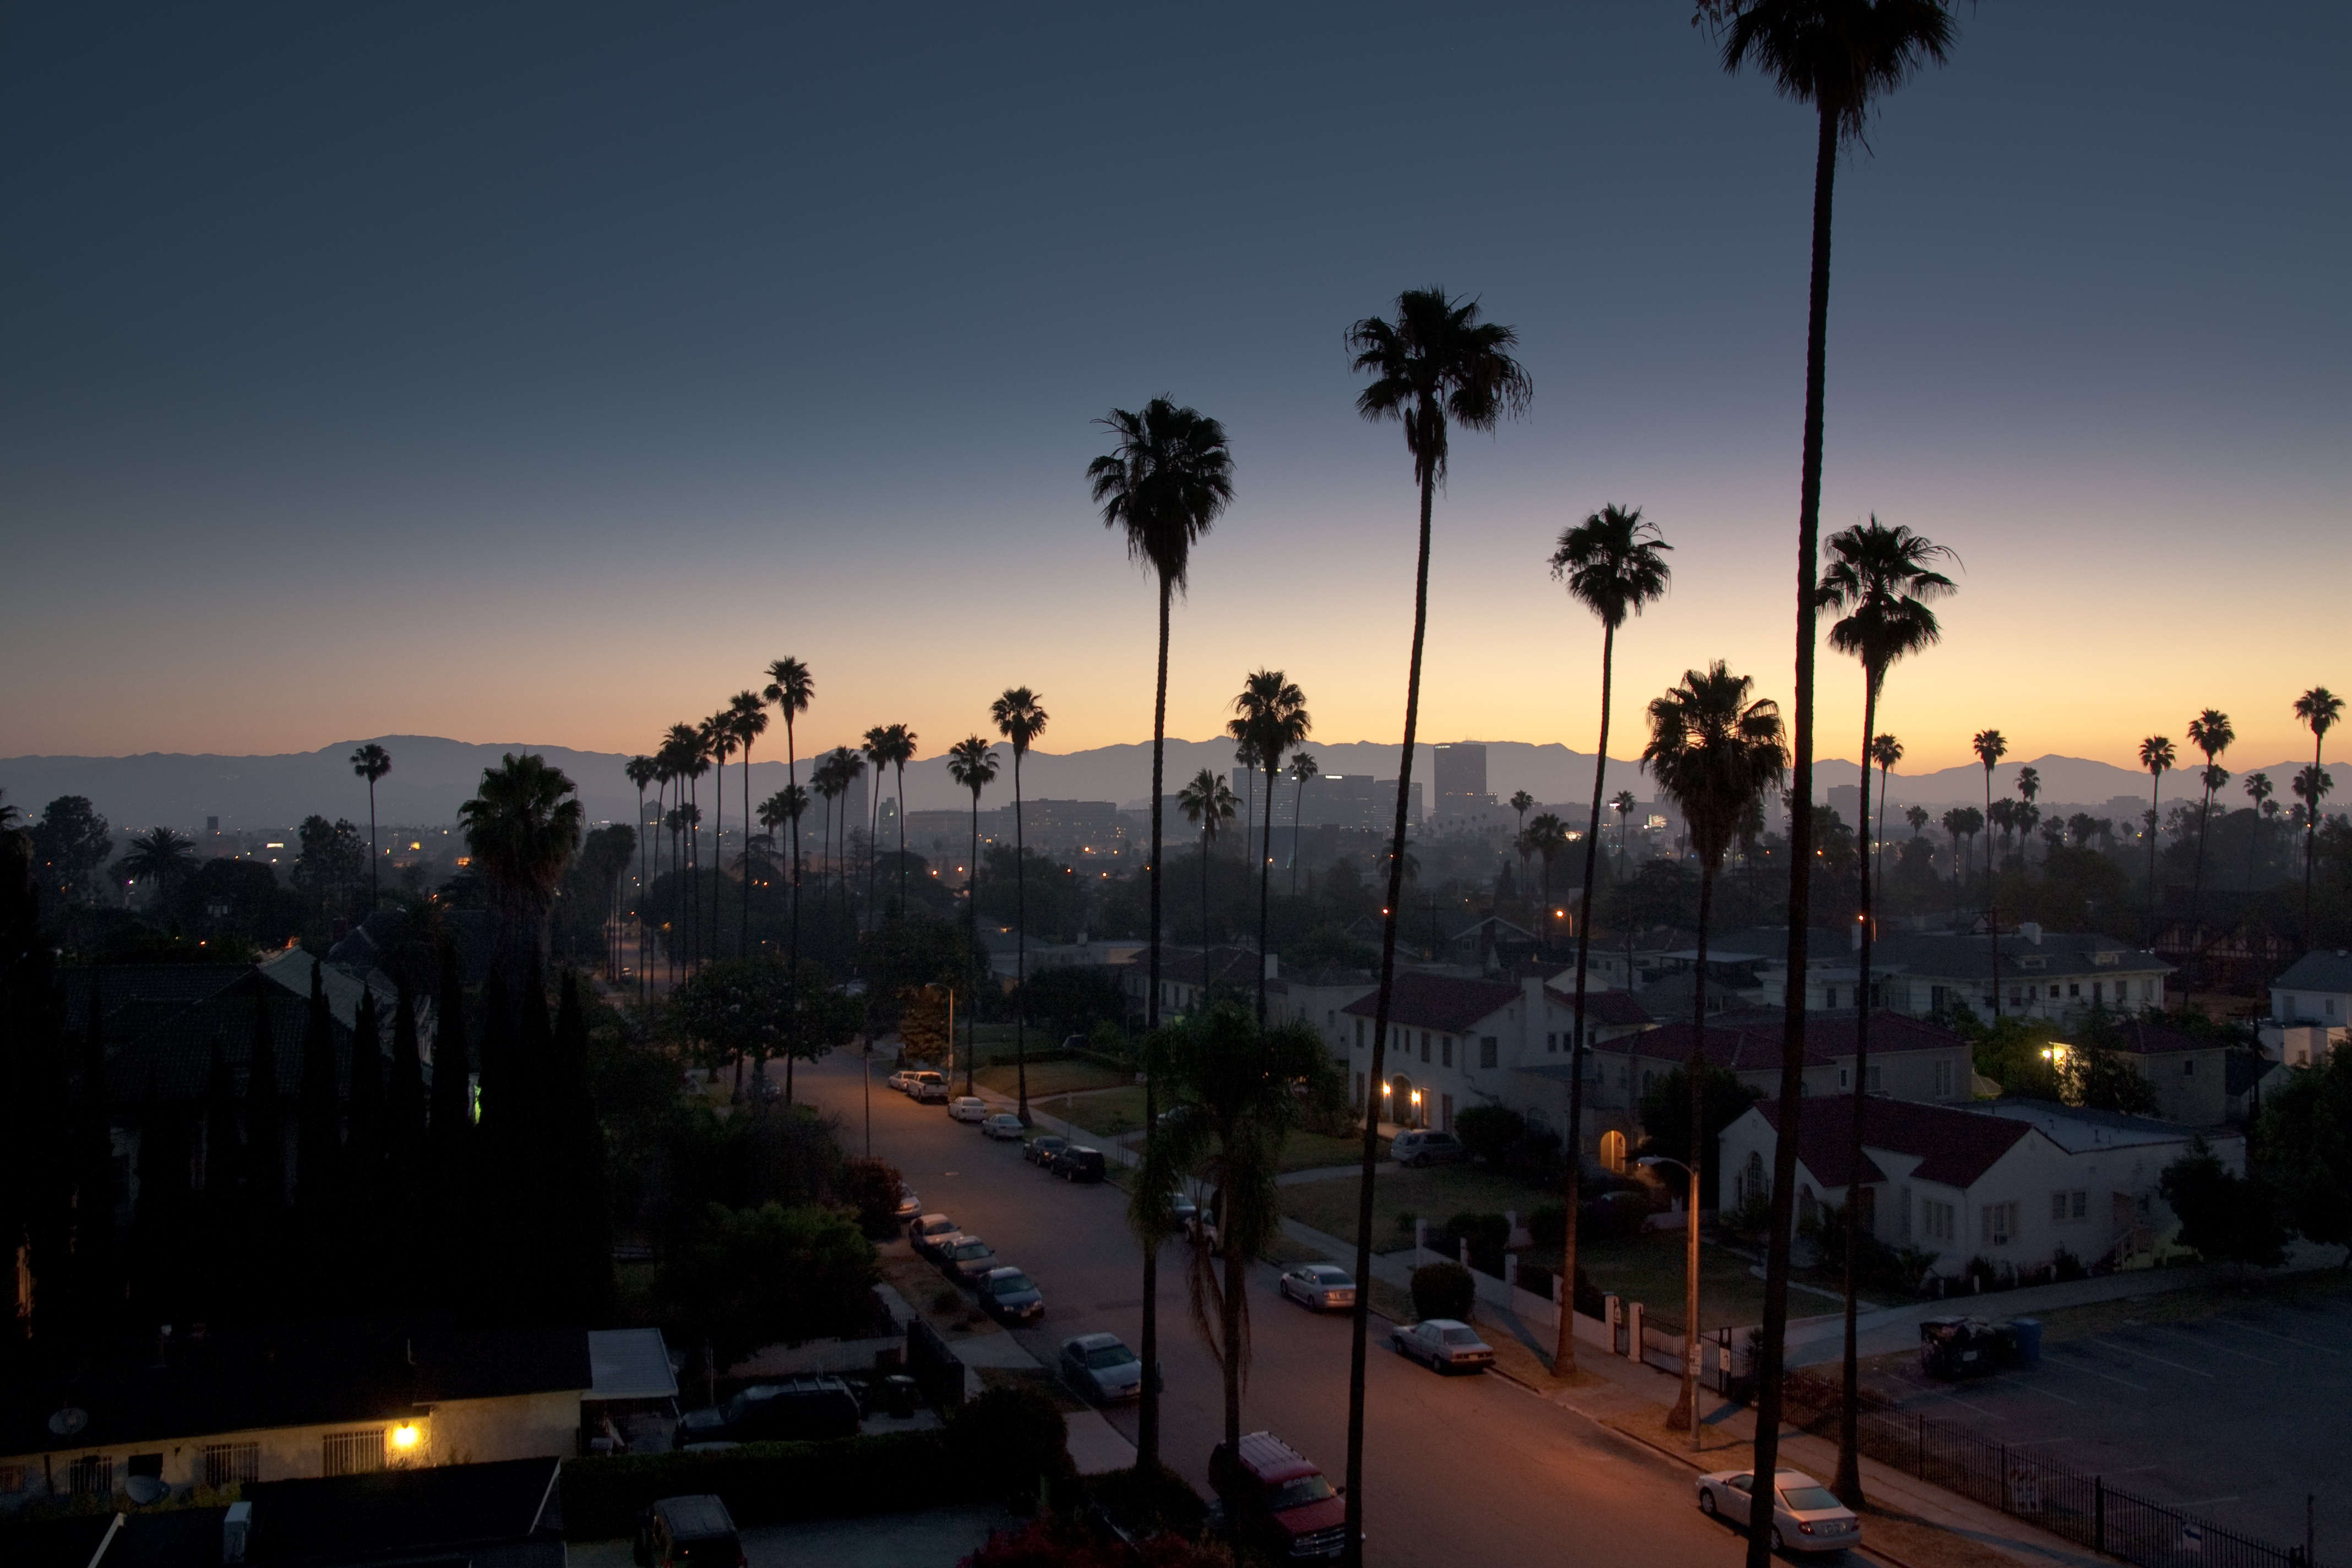 Los Angeles HD Wallpaper